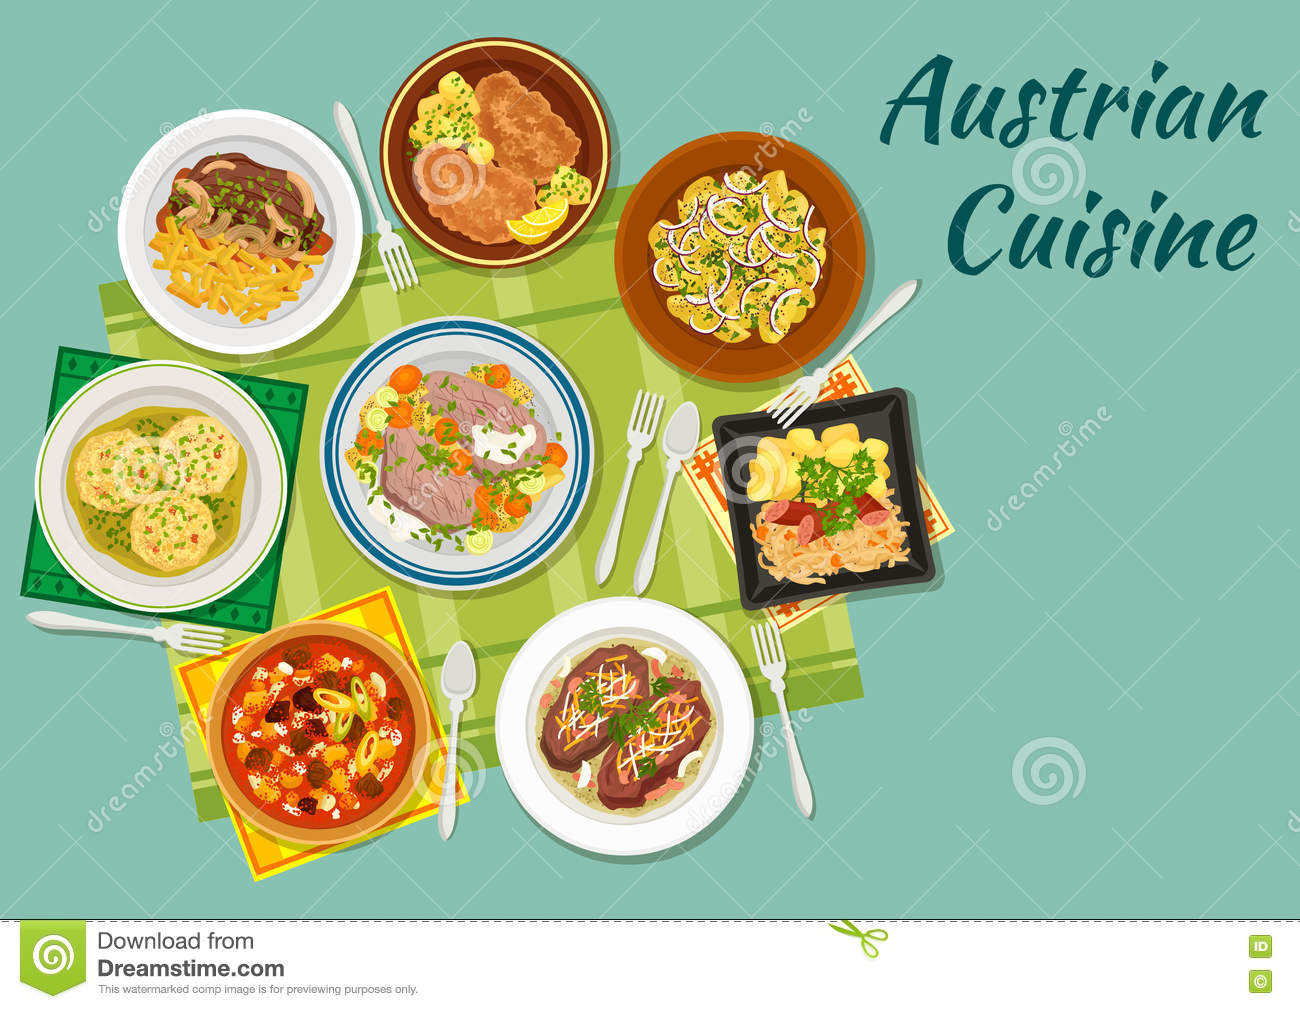 Austrian Cuisine Flat Icon With Meat Dishes Stock Vector.